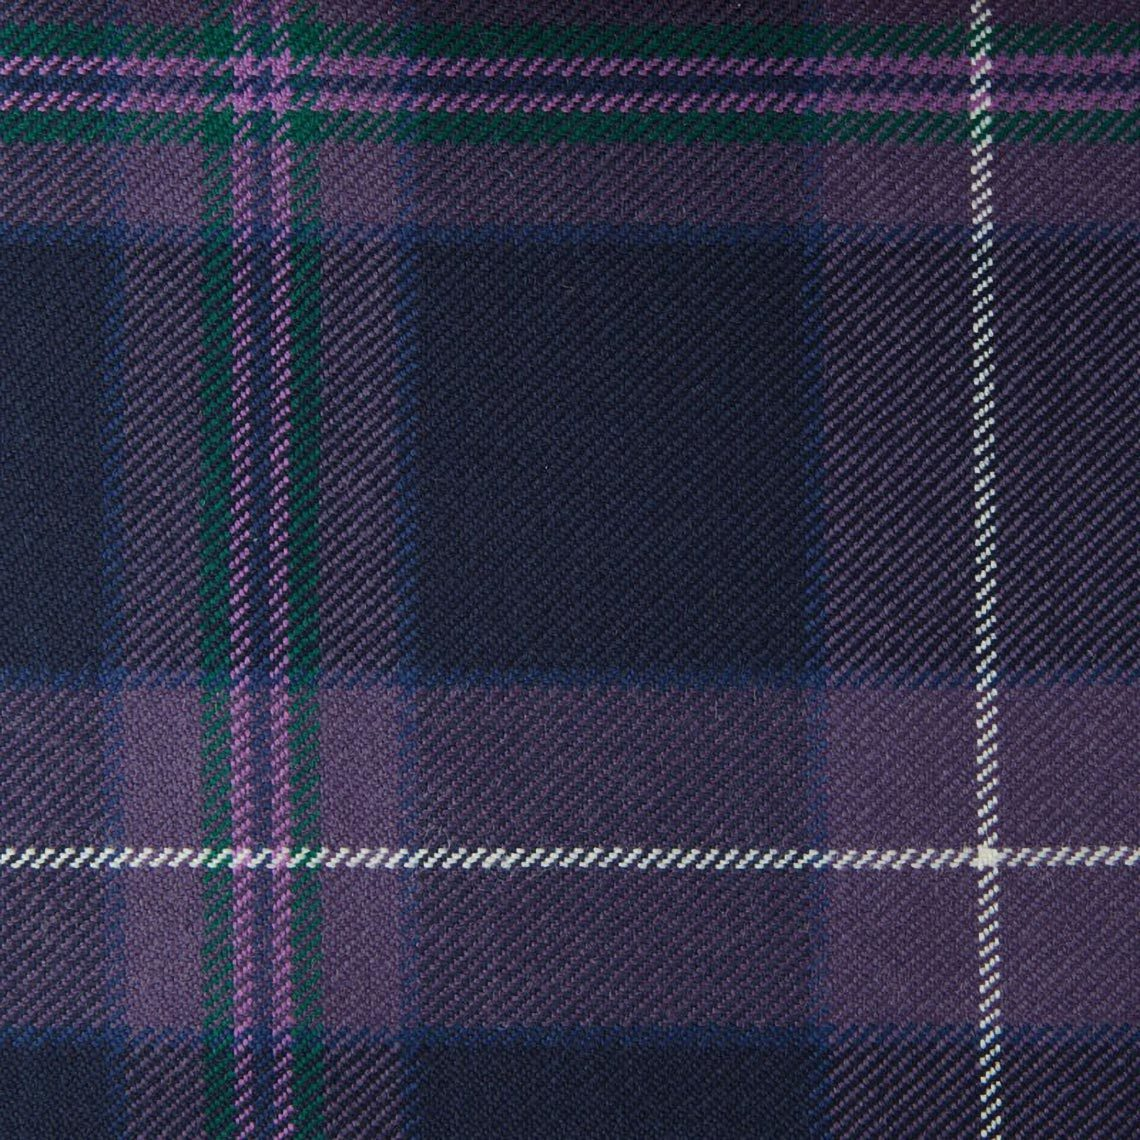 Scottish Heather Kilt